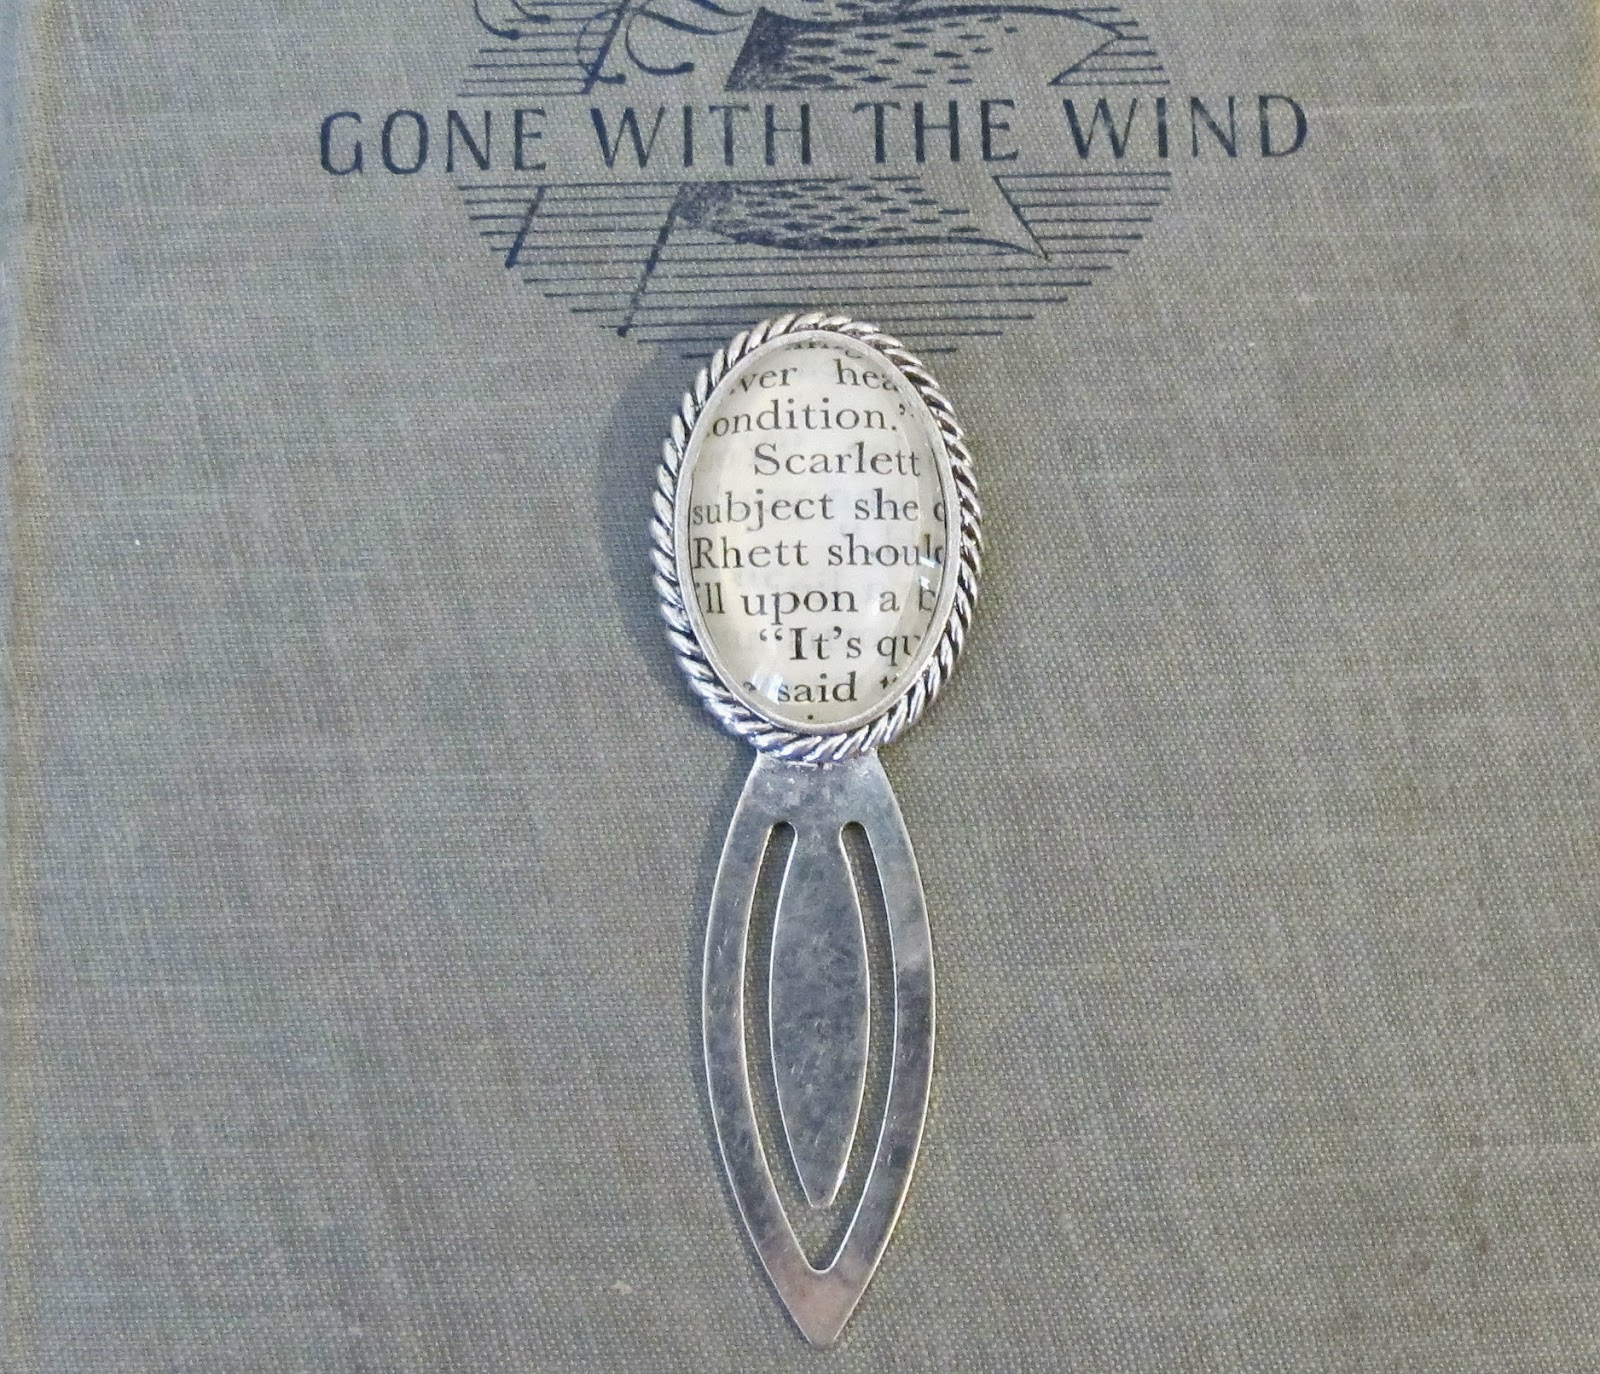 image gone with the wind bookmark domum vindemia scarlett o'hara rhett butler classic literature